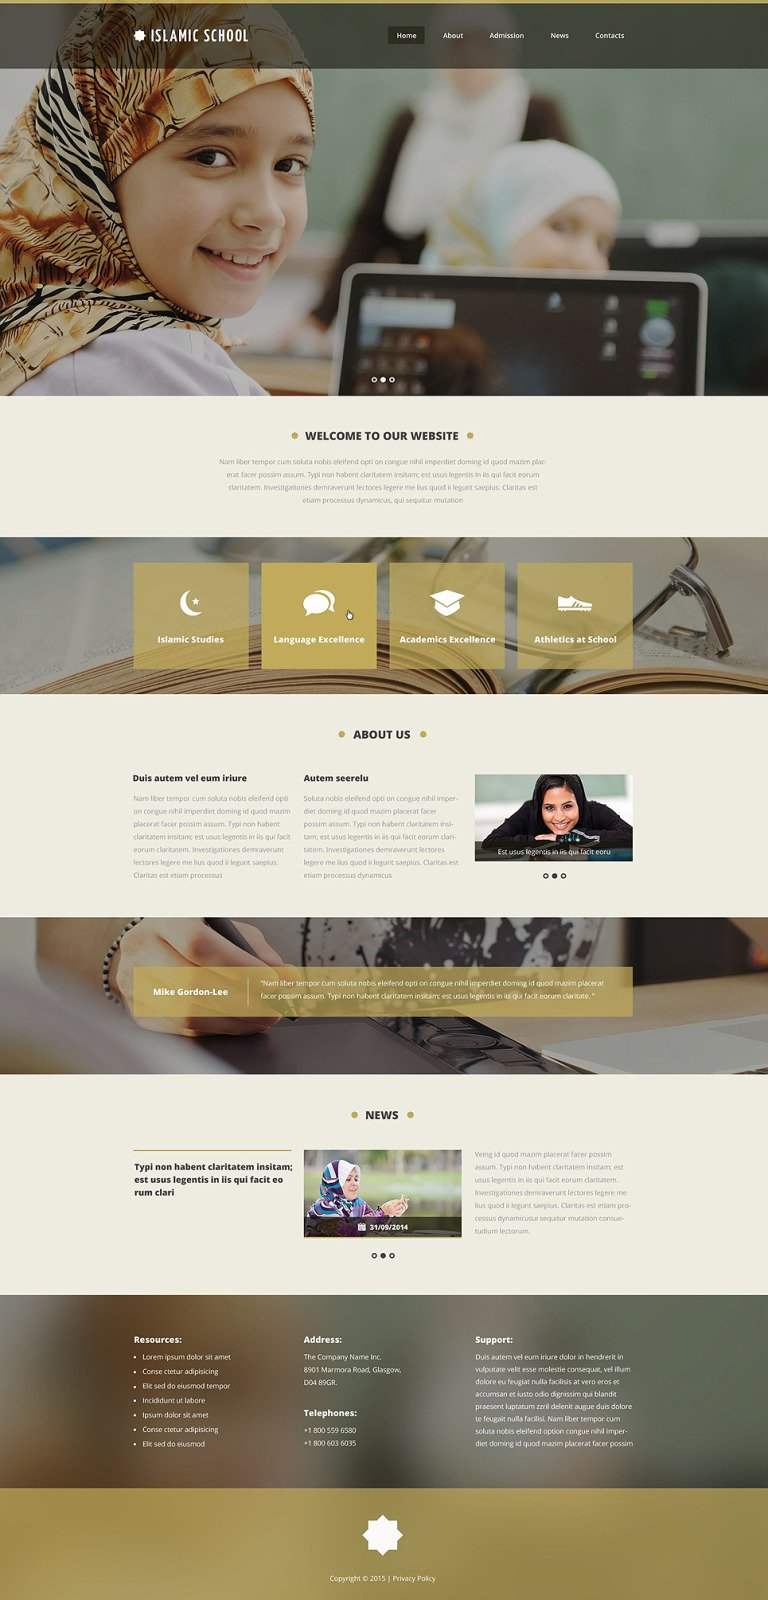 Islamic School Website Template New Screenshots BIG